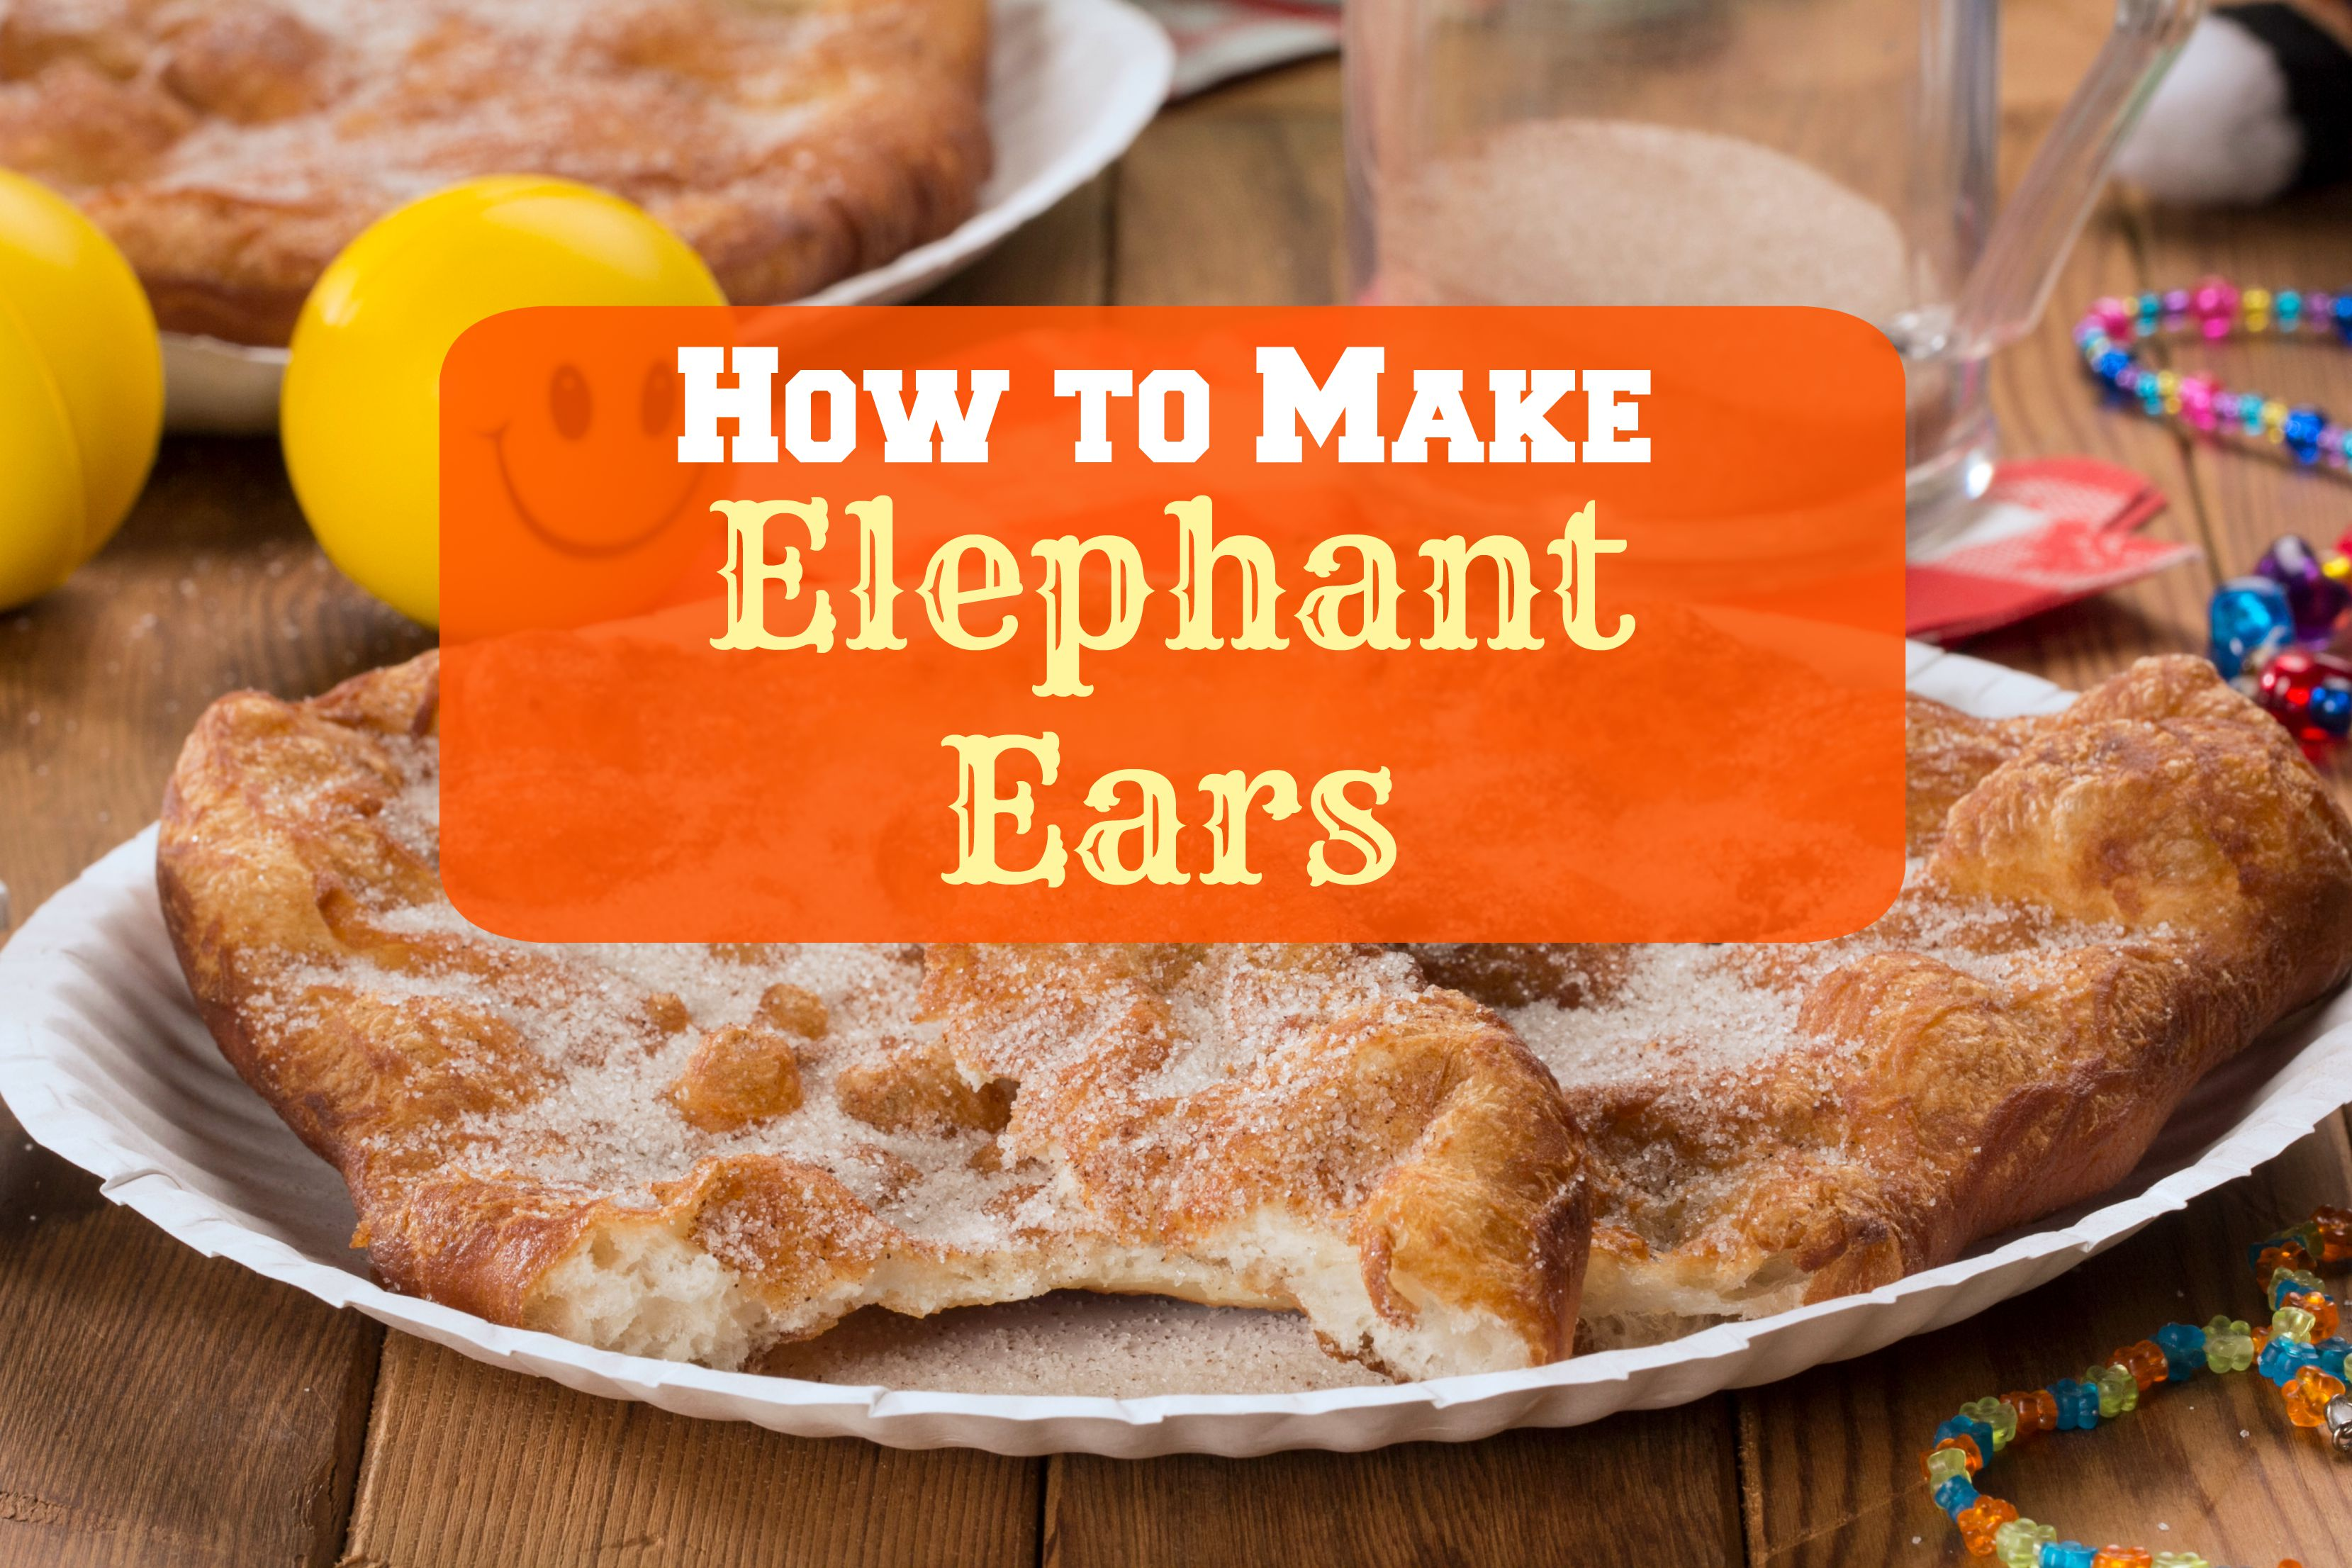 Discussion on this topic: How to Make Elephant Ears, how-to-make-elephant-ears/